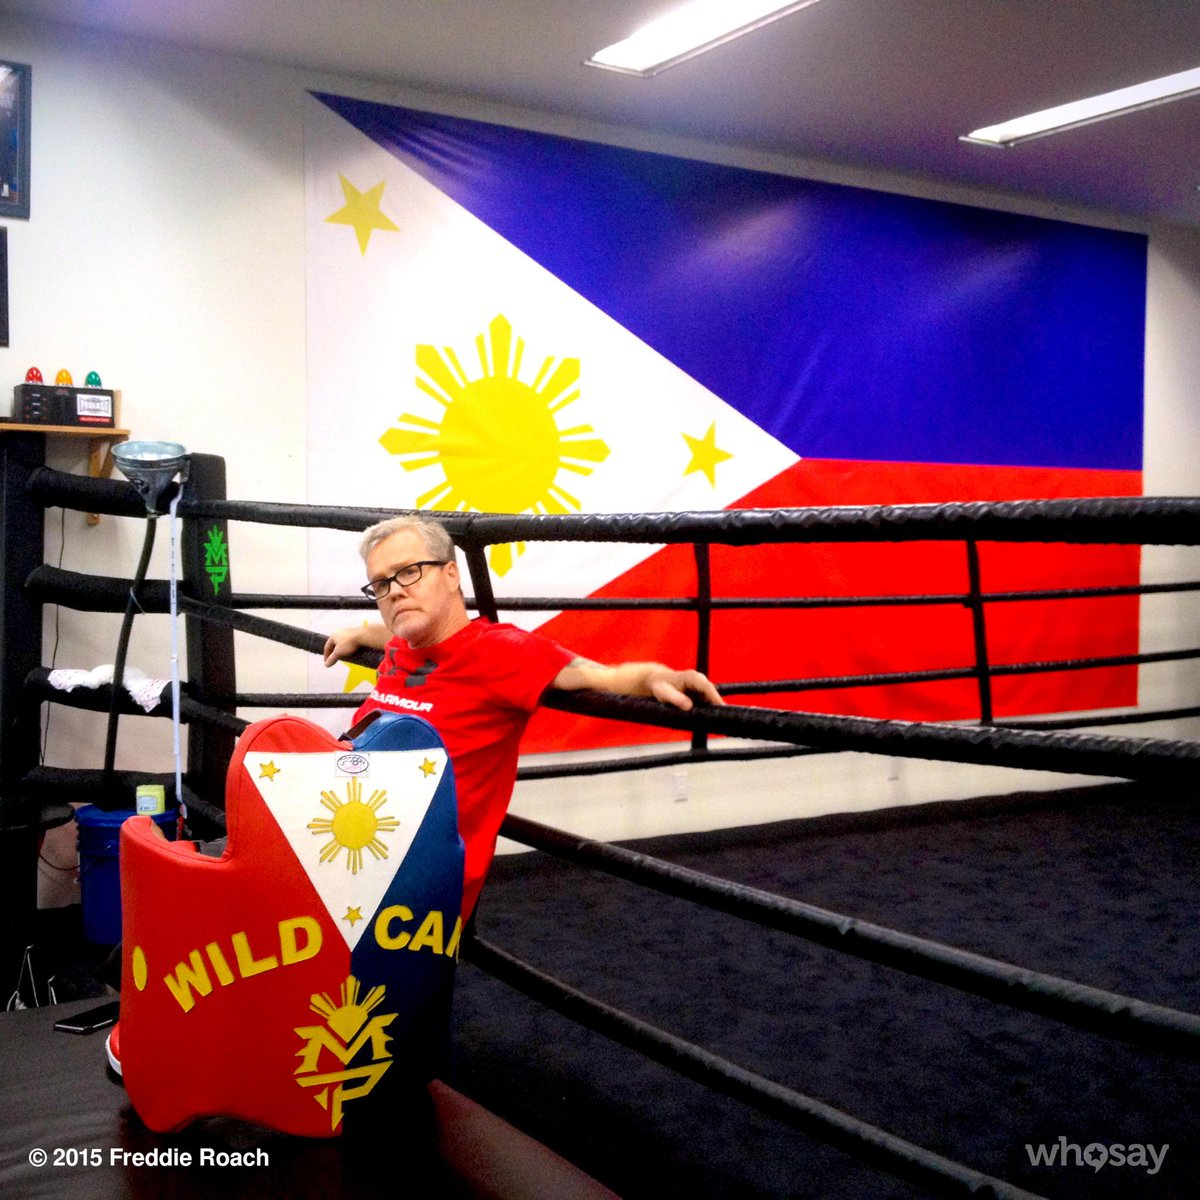 .@mannypacquiao got a new flag for the gym http://t.co/WcOMSR3Fgh